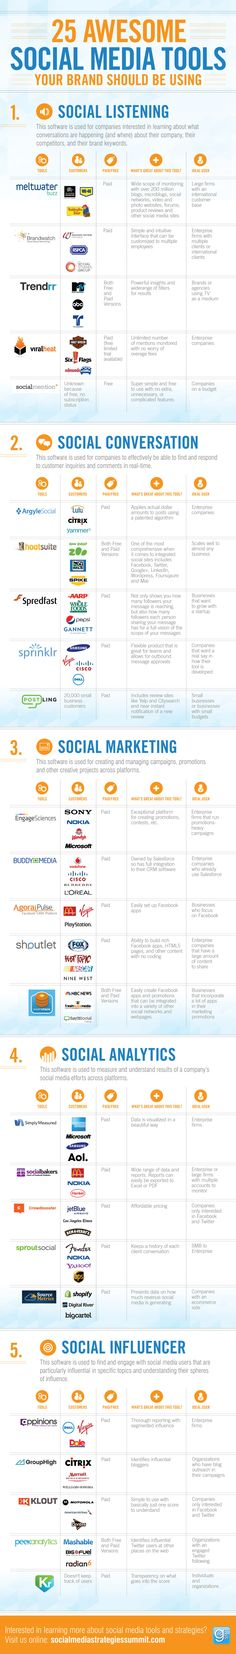 25 Awesome #SocialMedia Marketing Tools - #infographic